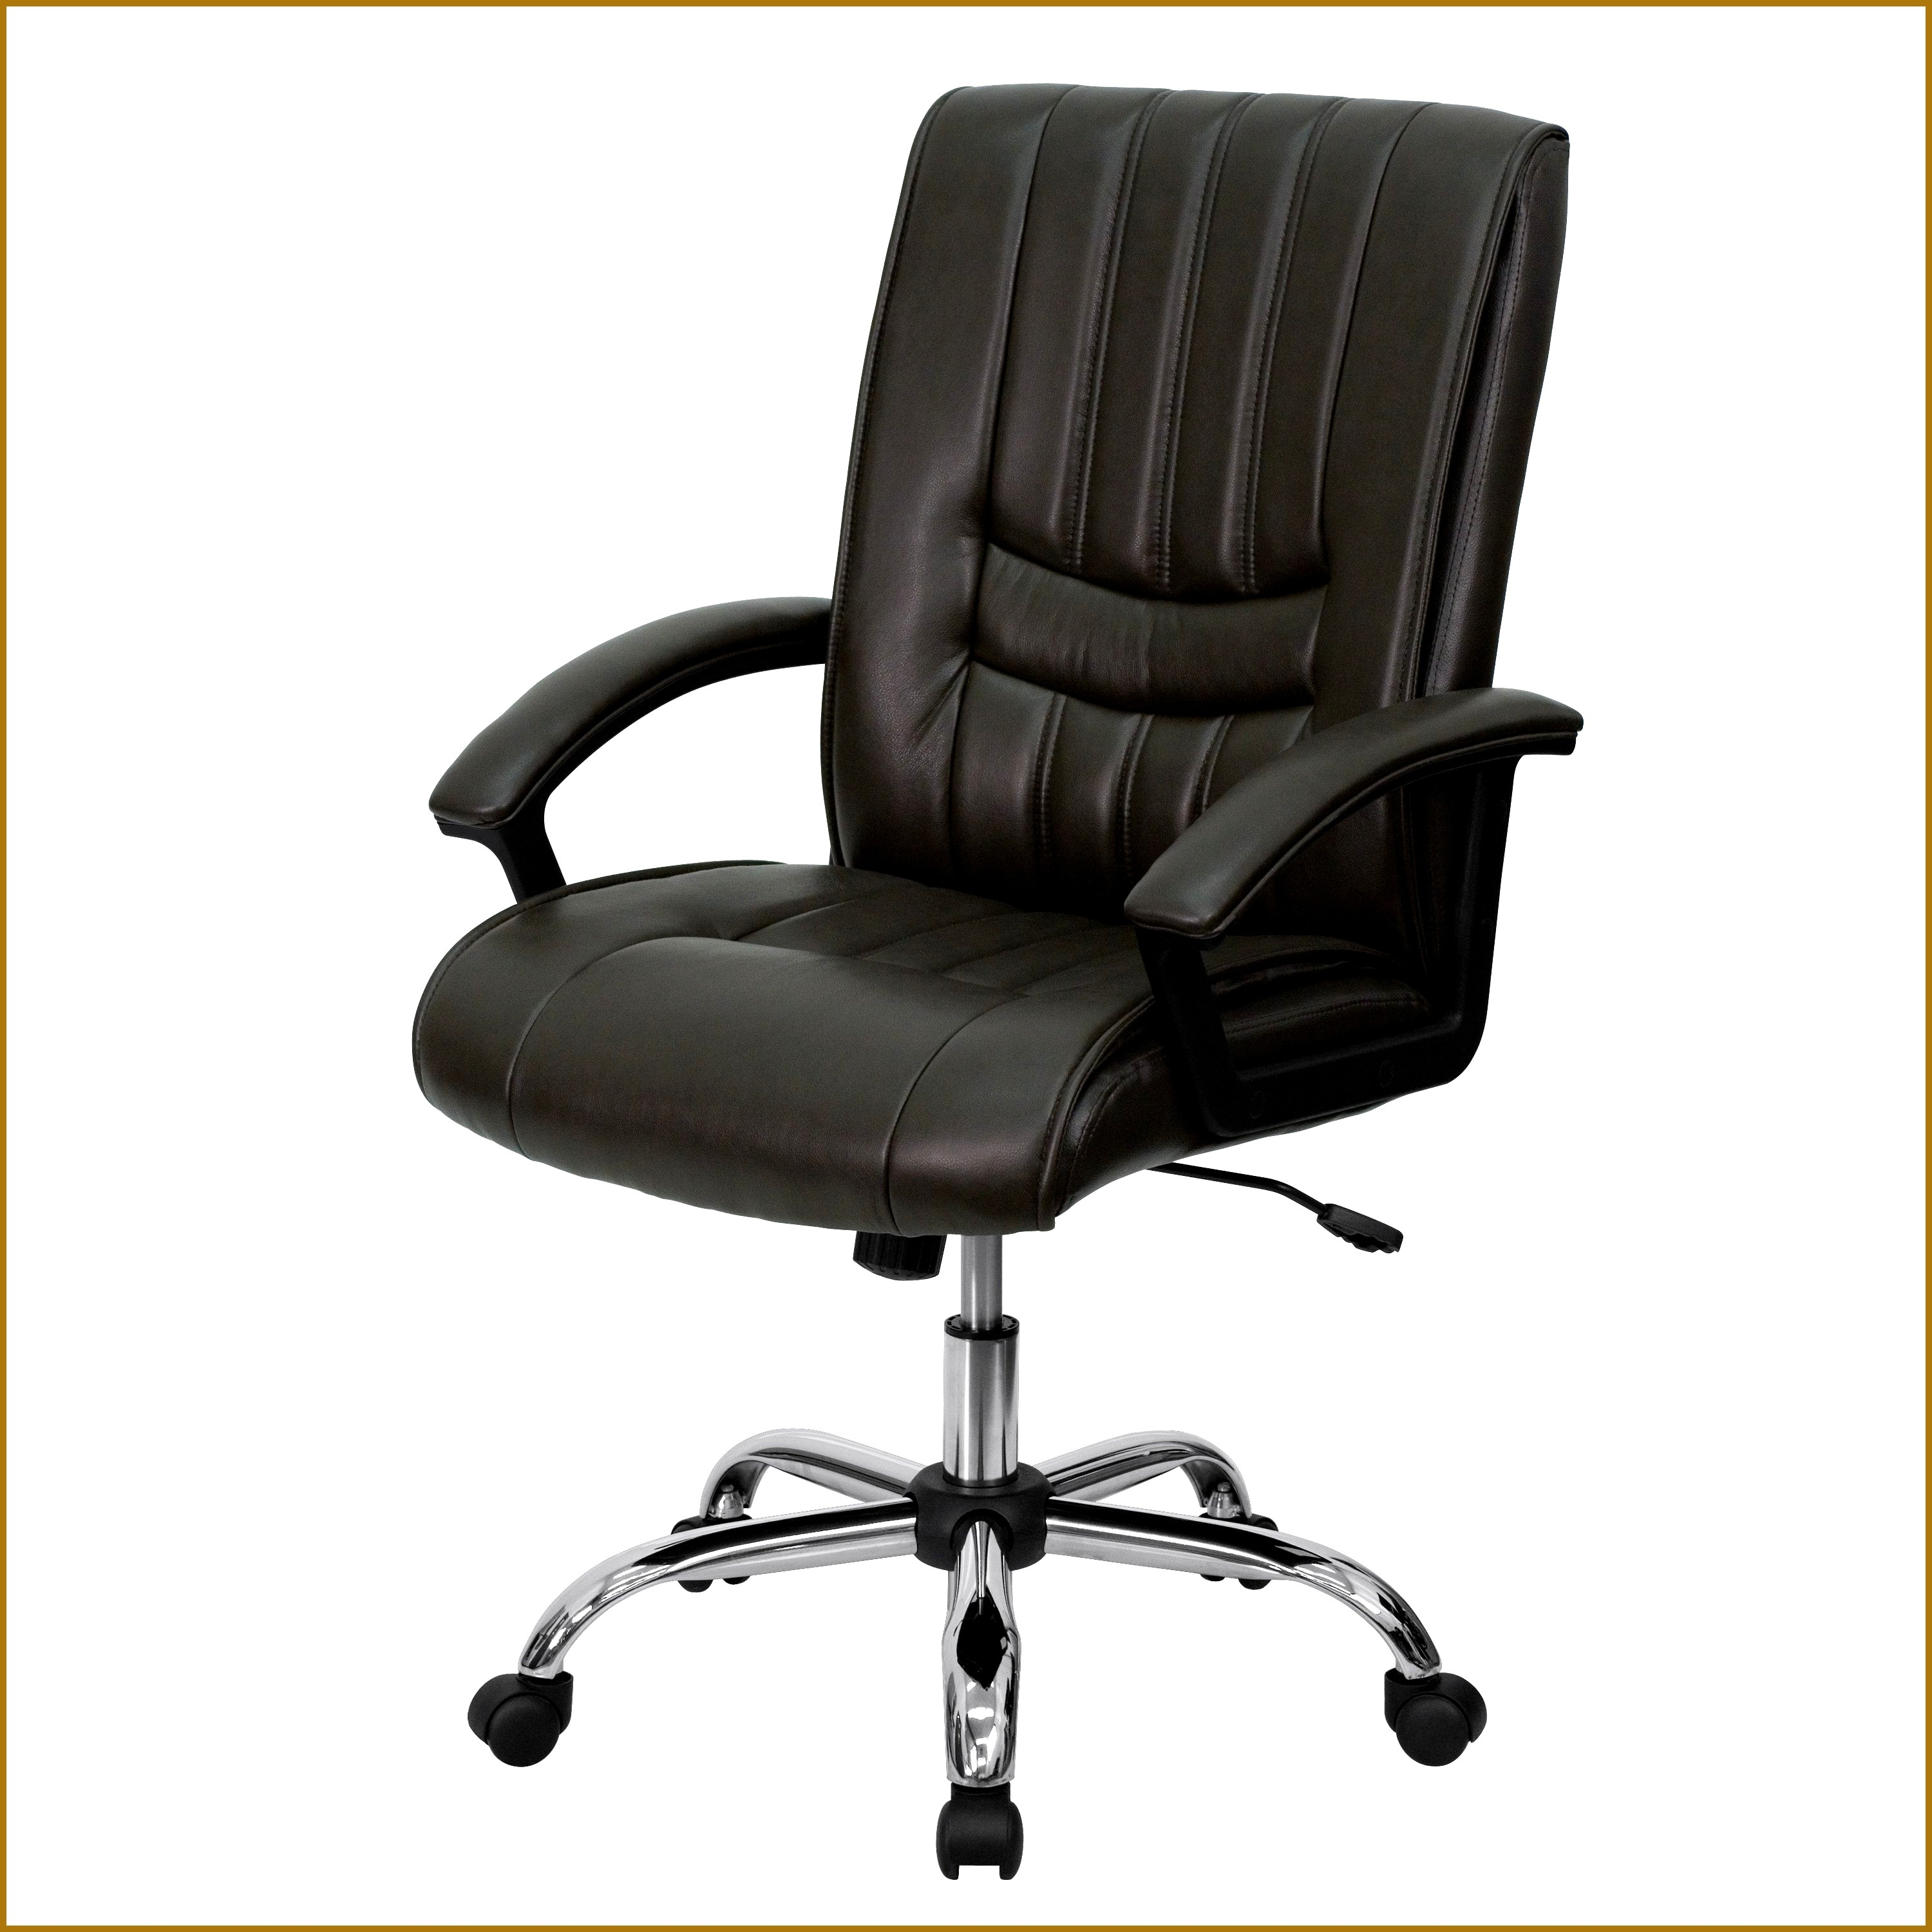 Office Chairs Seattle Fresh Ideas About Plush Office Chair 23 For Well Known Plush Executive Office Chairs (View 9 of 20)